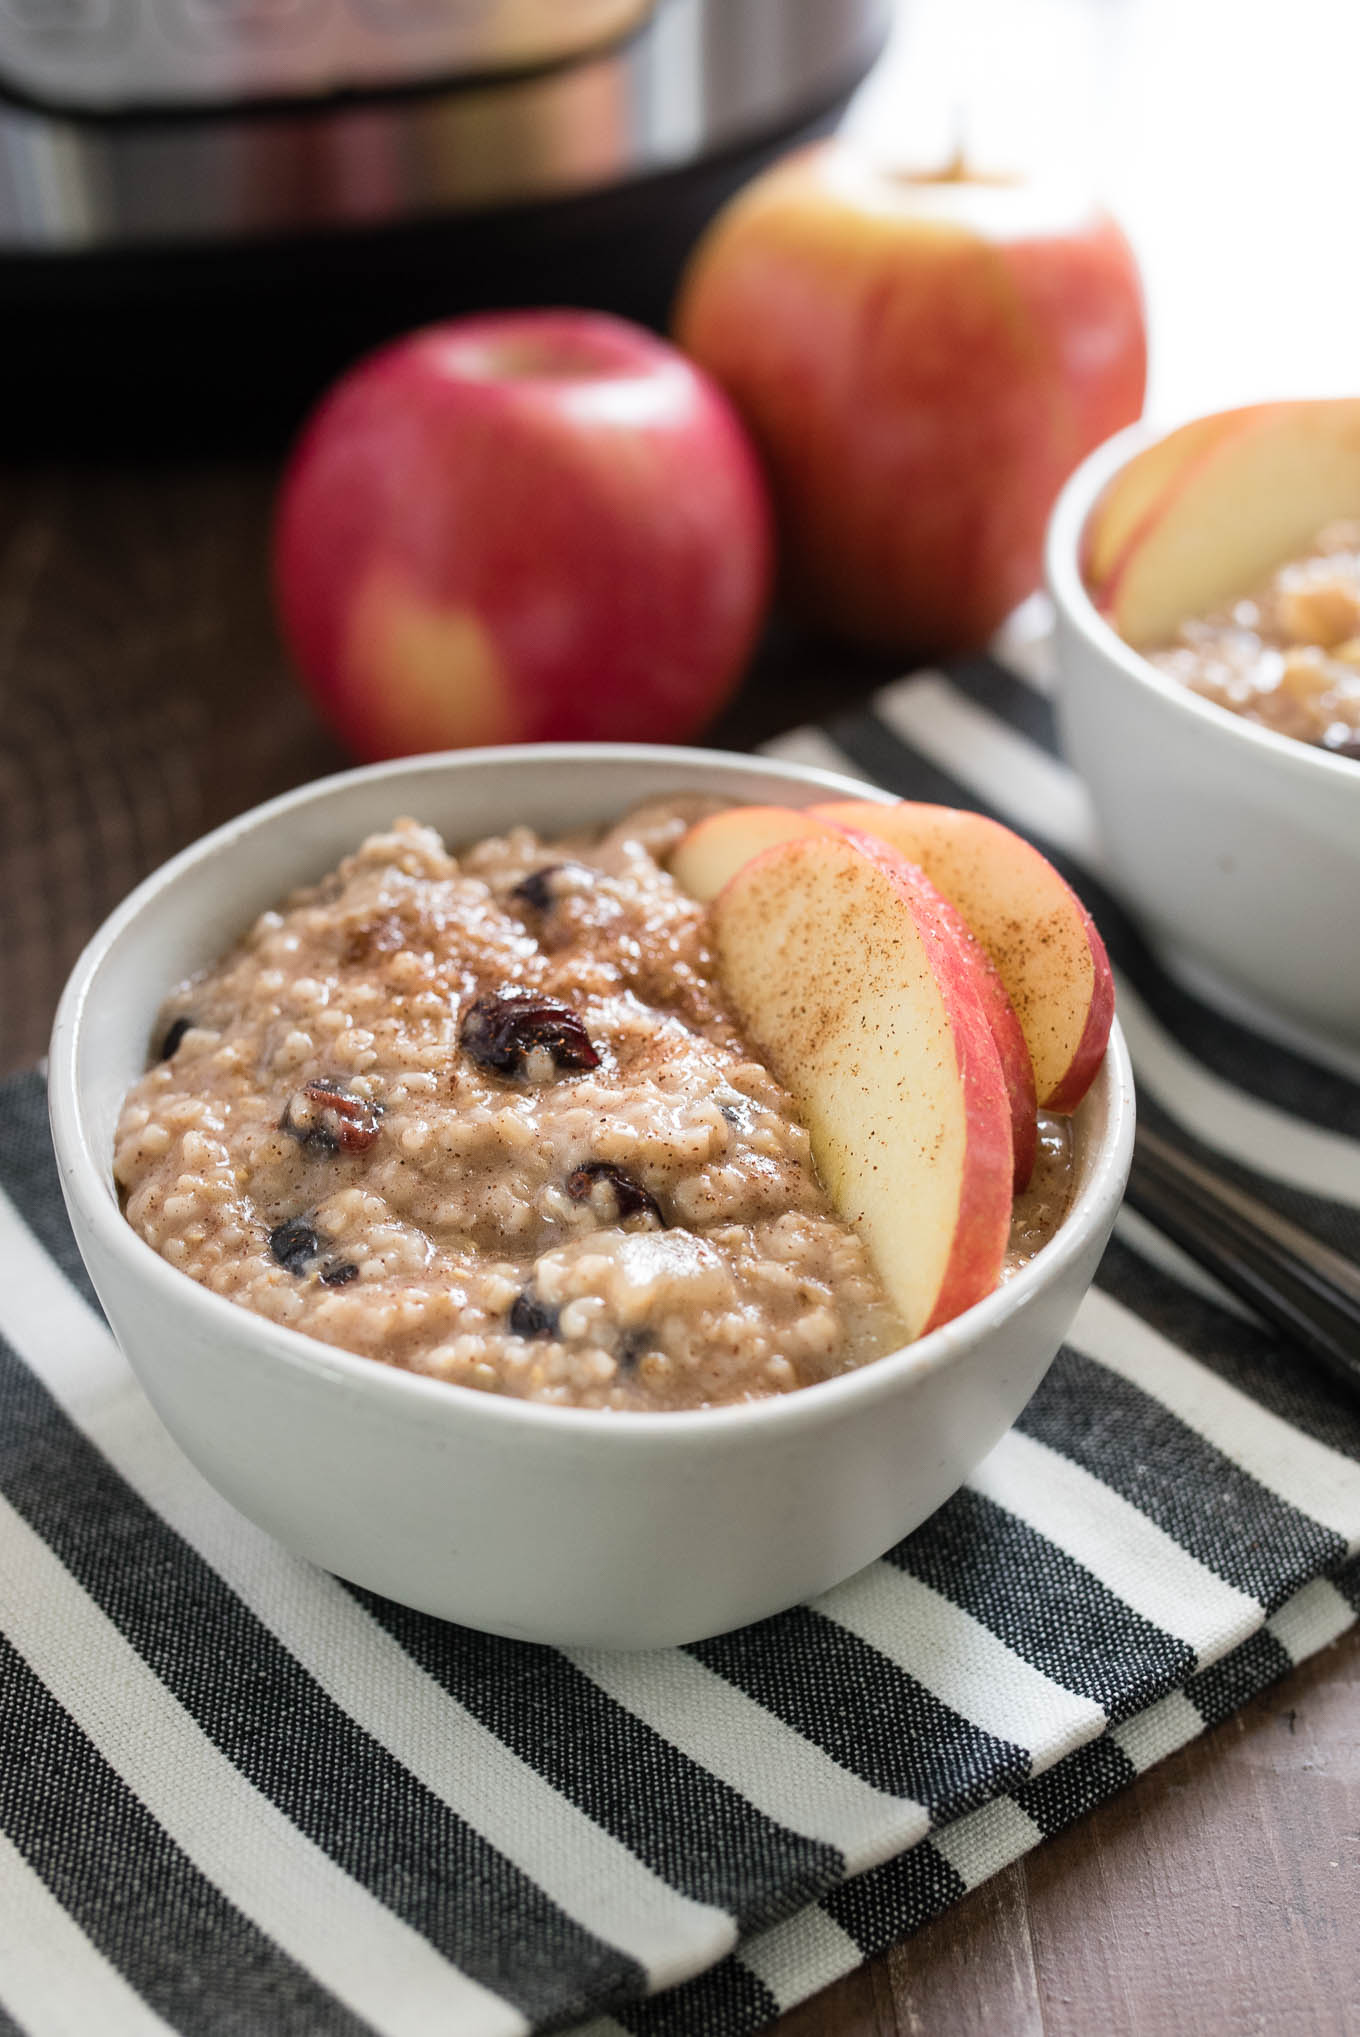 Instant Pot Apple Cranberry Steel Cut Oats are extra creamy and flavorful and you don't have to babysit the stovetop!